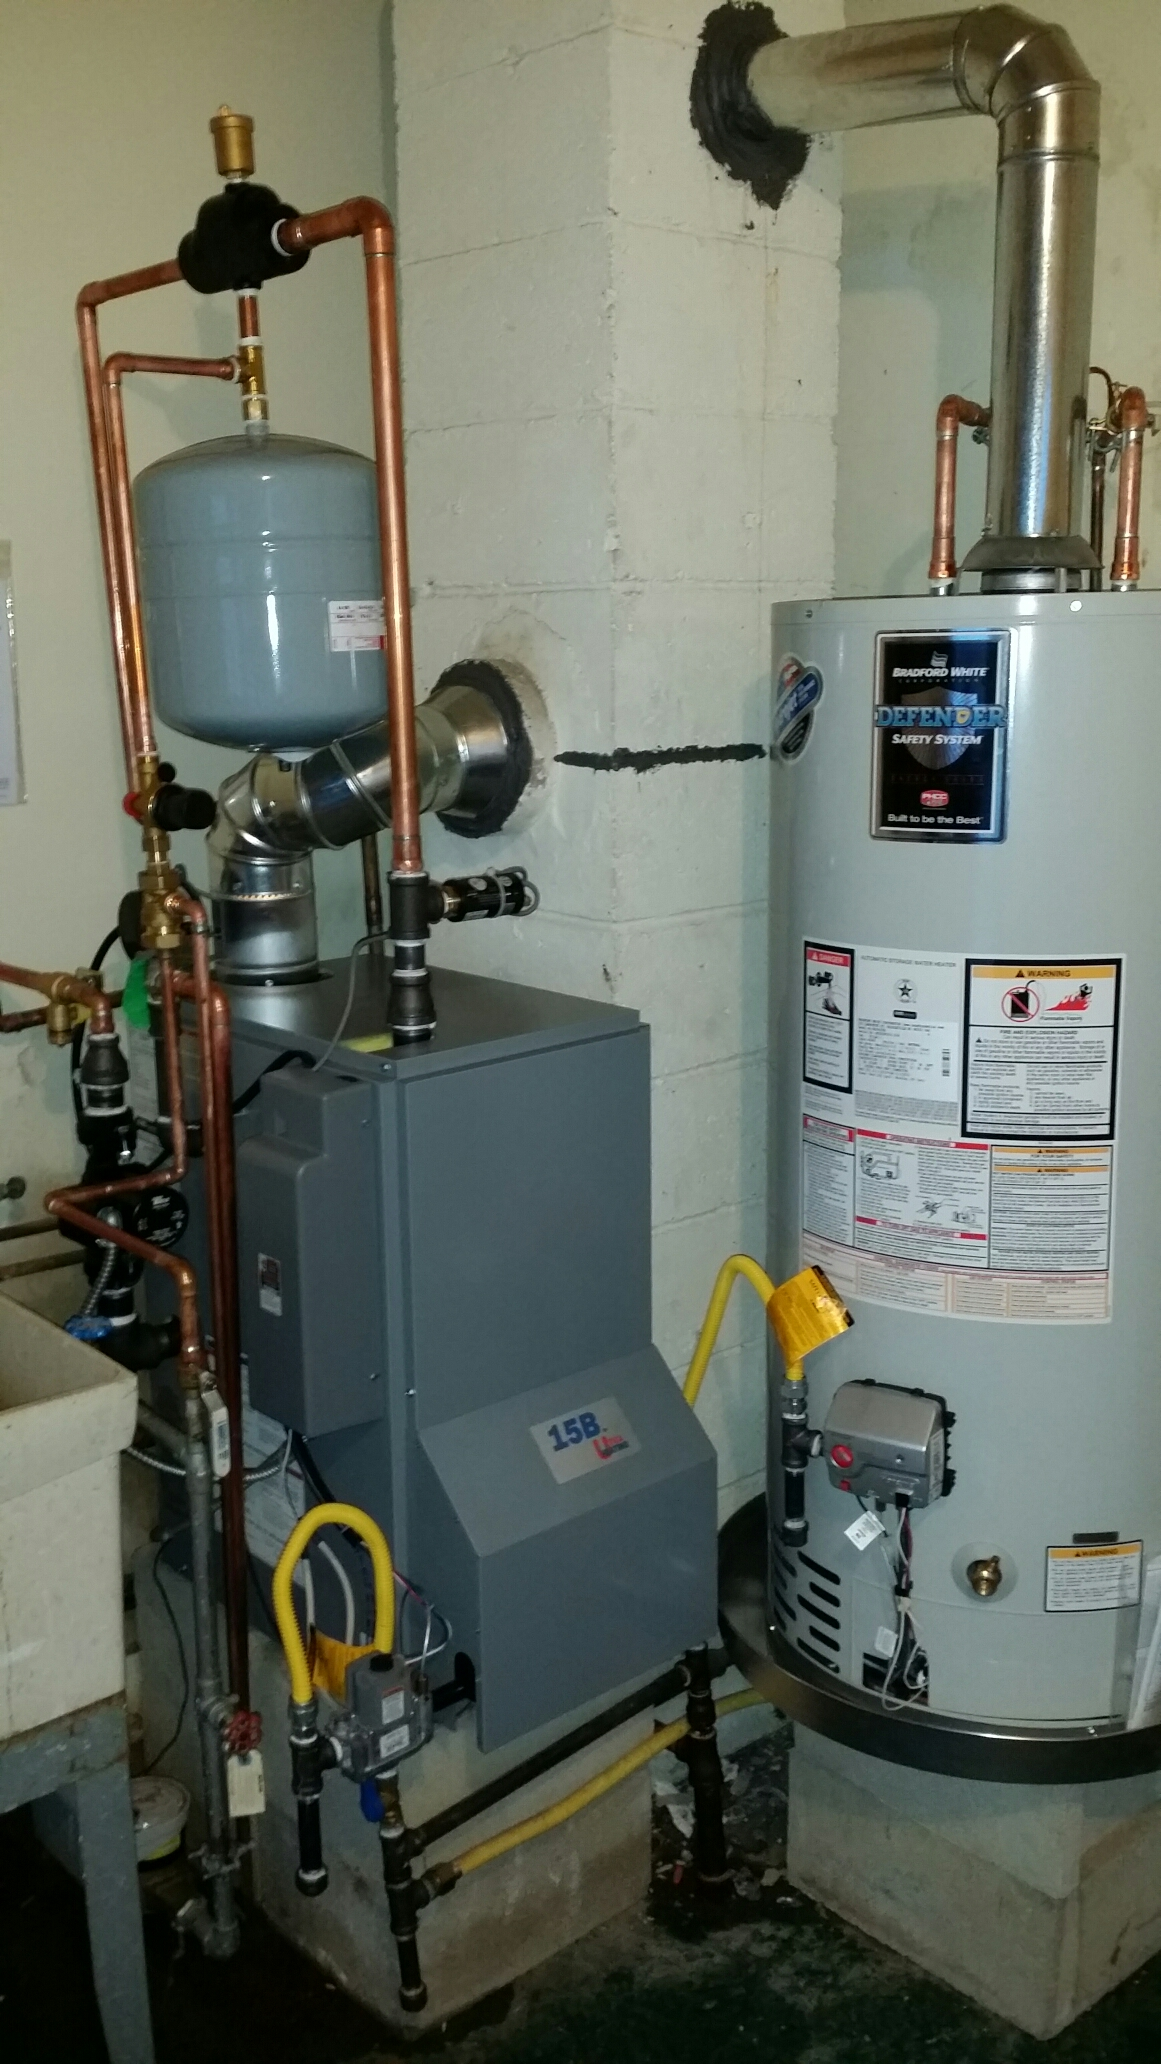 Toms River, NJ - Install new gas boiler system. Install Utica UB15 gas boiler and Bradford White 40 Gallon gas water heater.